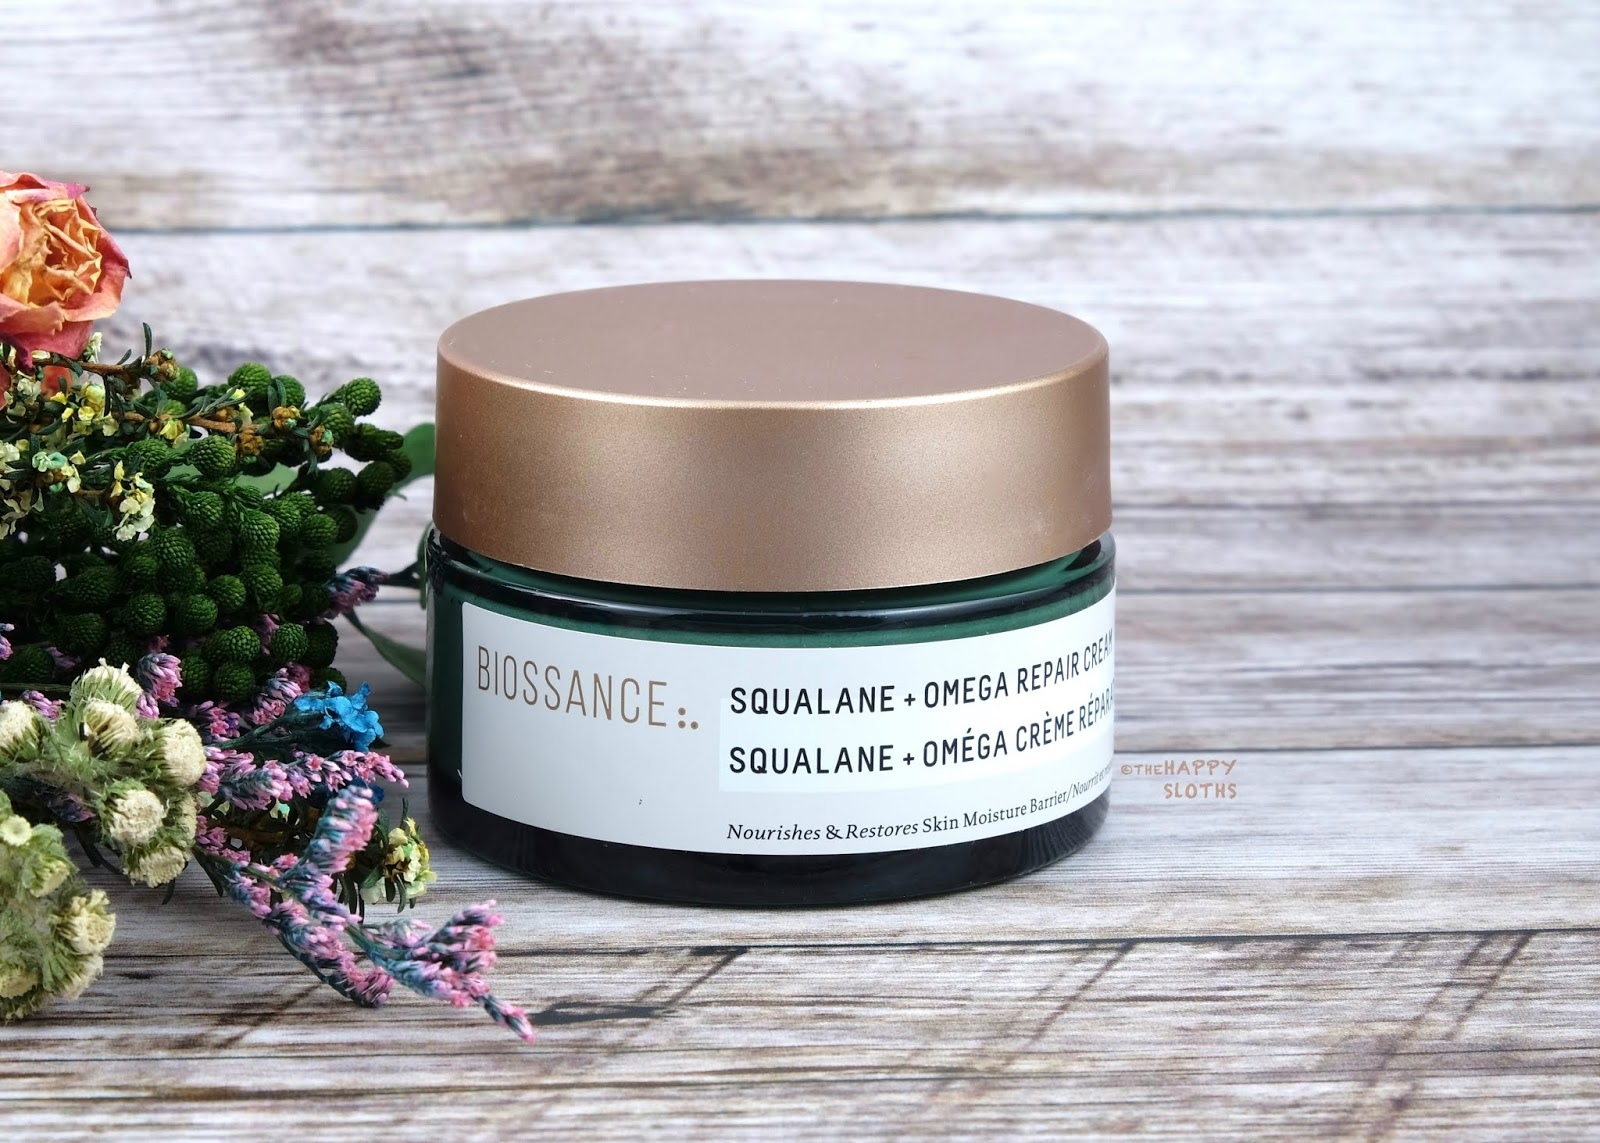 Biossance | Squalane + Omega Repair Cream: Review